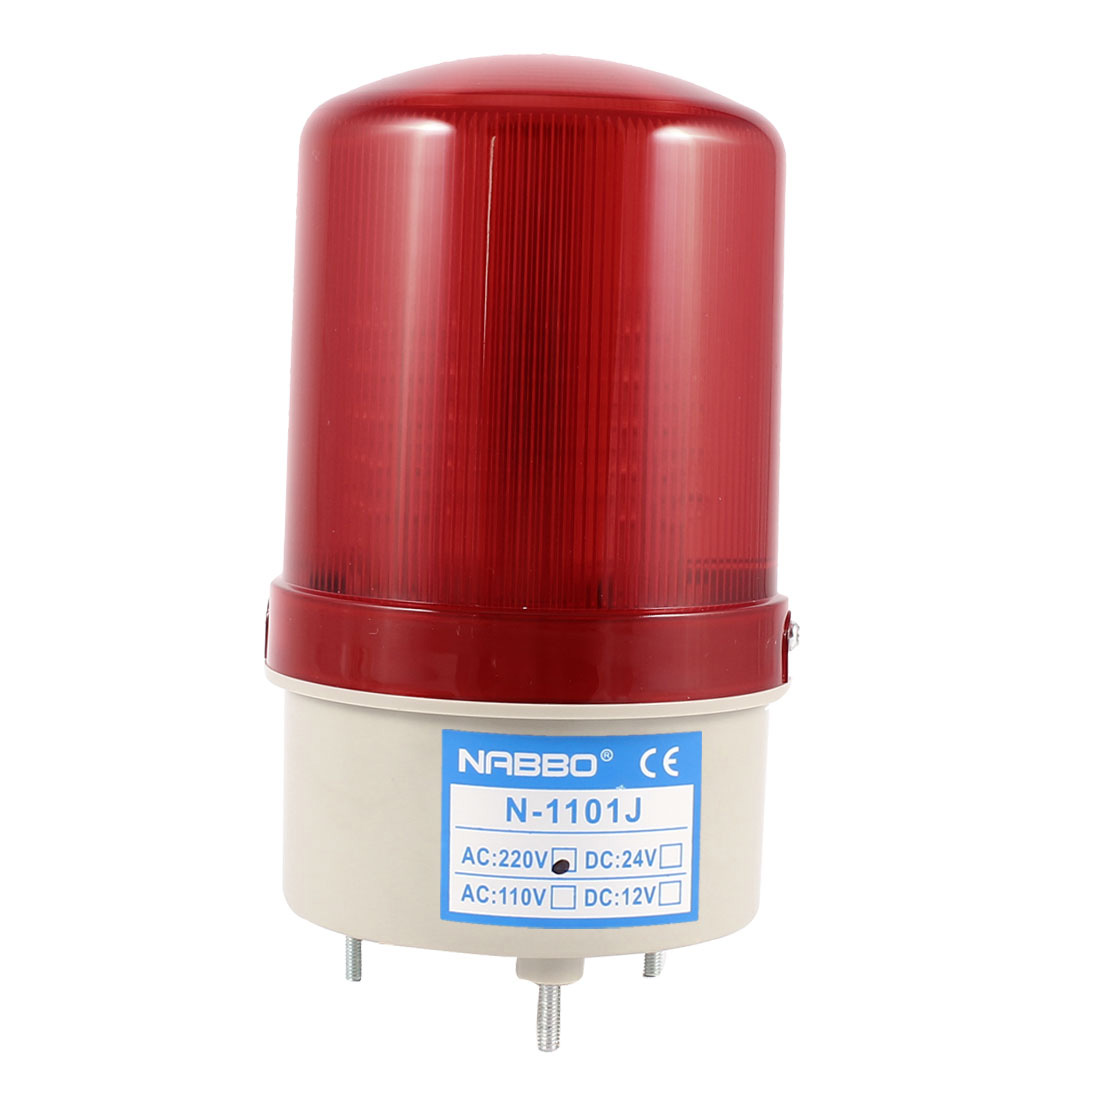 105-110dB Buzzer Siren AC 220V Red LED Warning Light Signal Tower Lamp